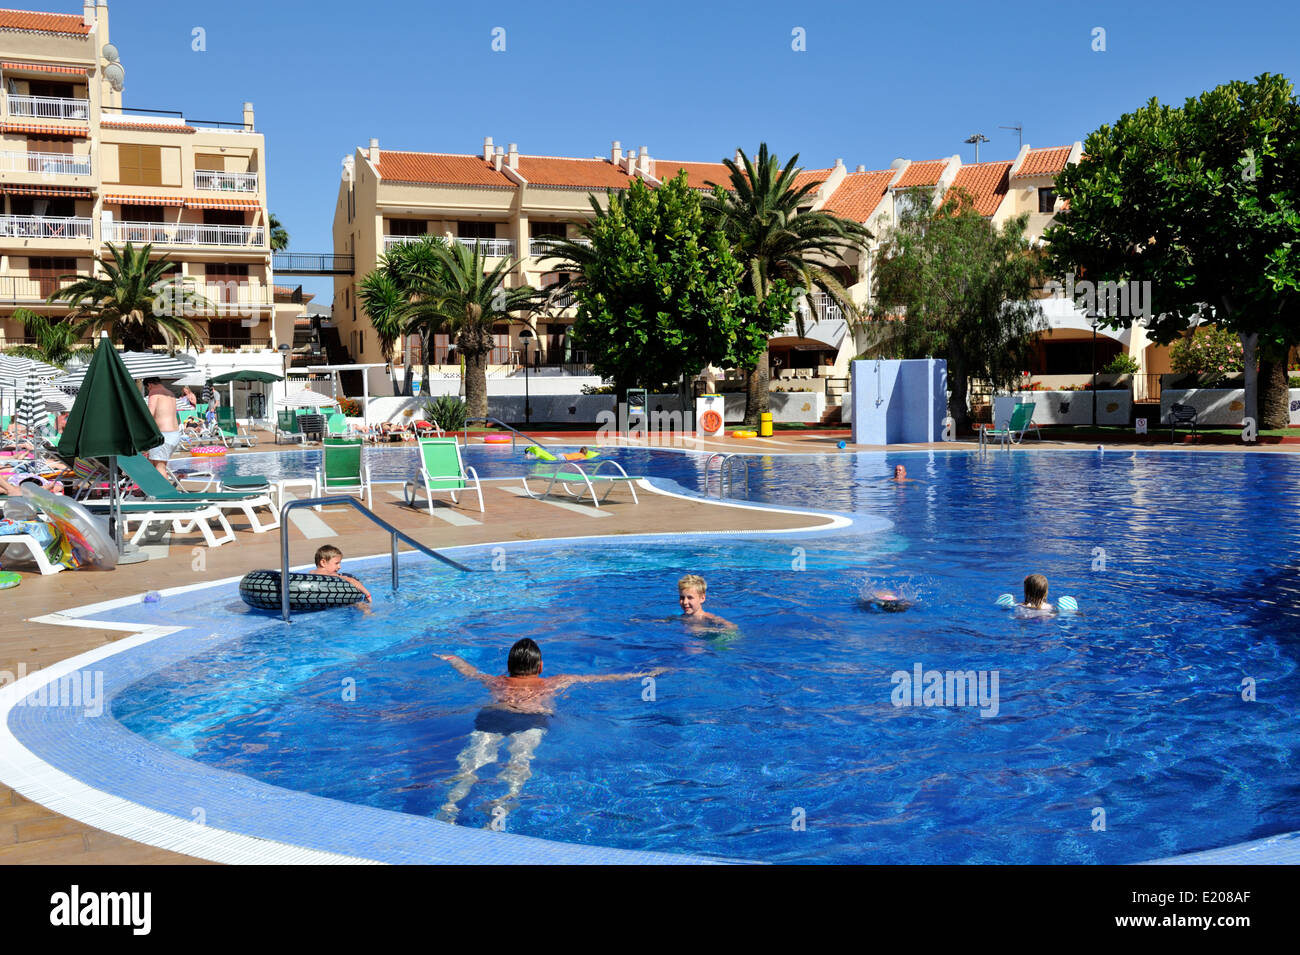 Holiday Apartment Pool And Building In Playa De Las Americas Stock